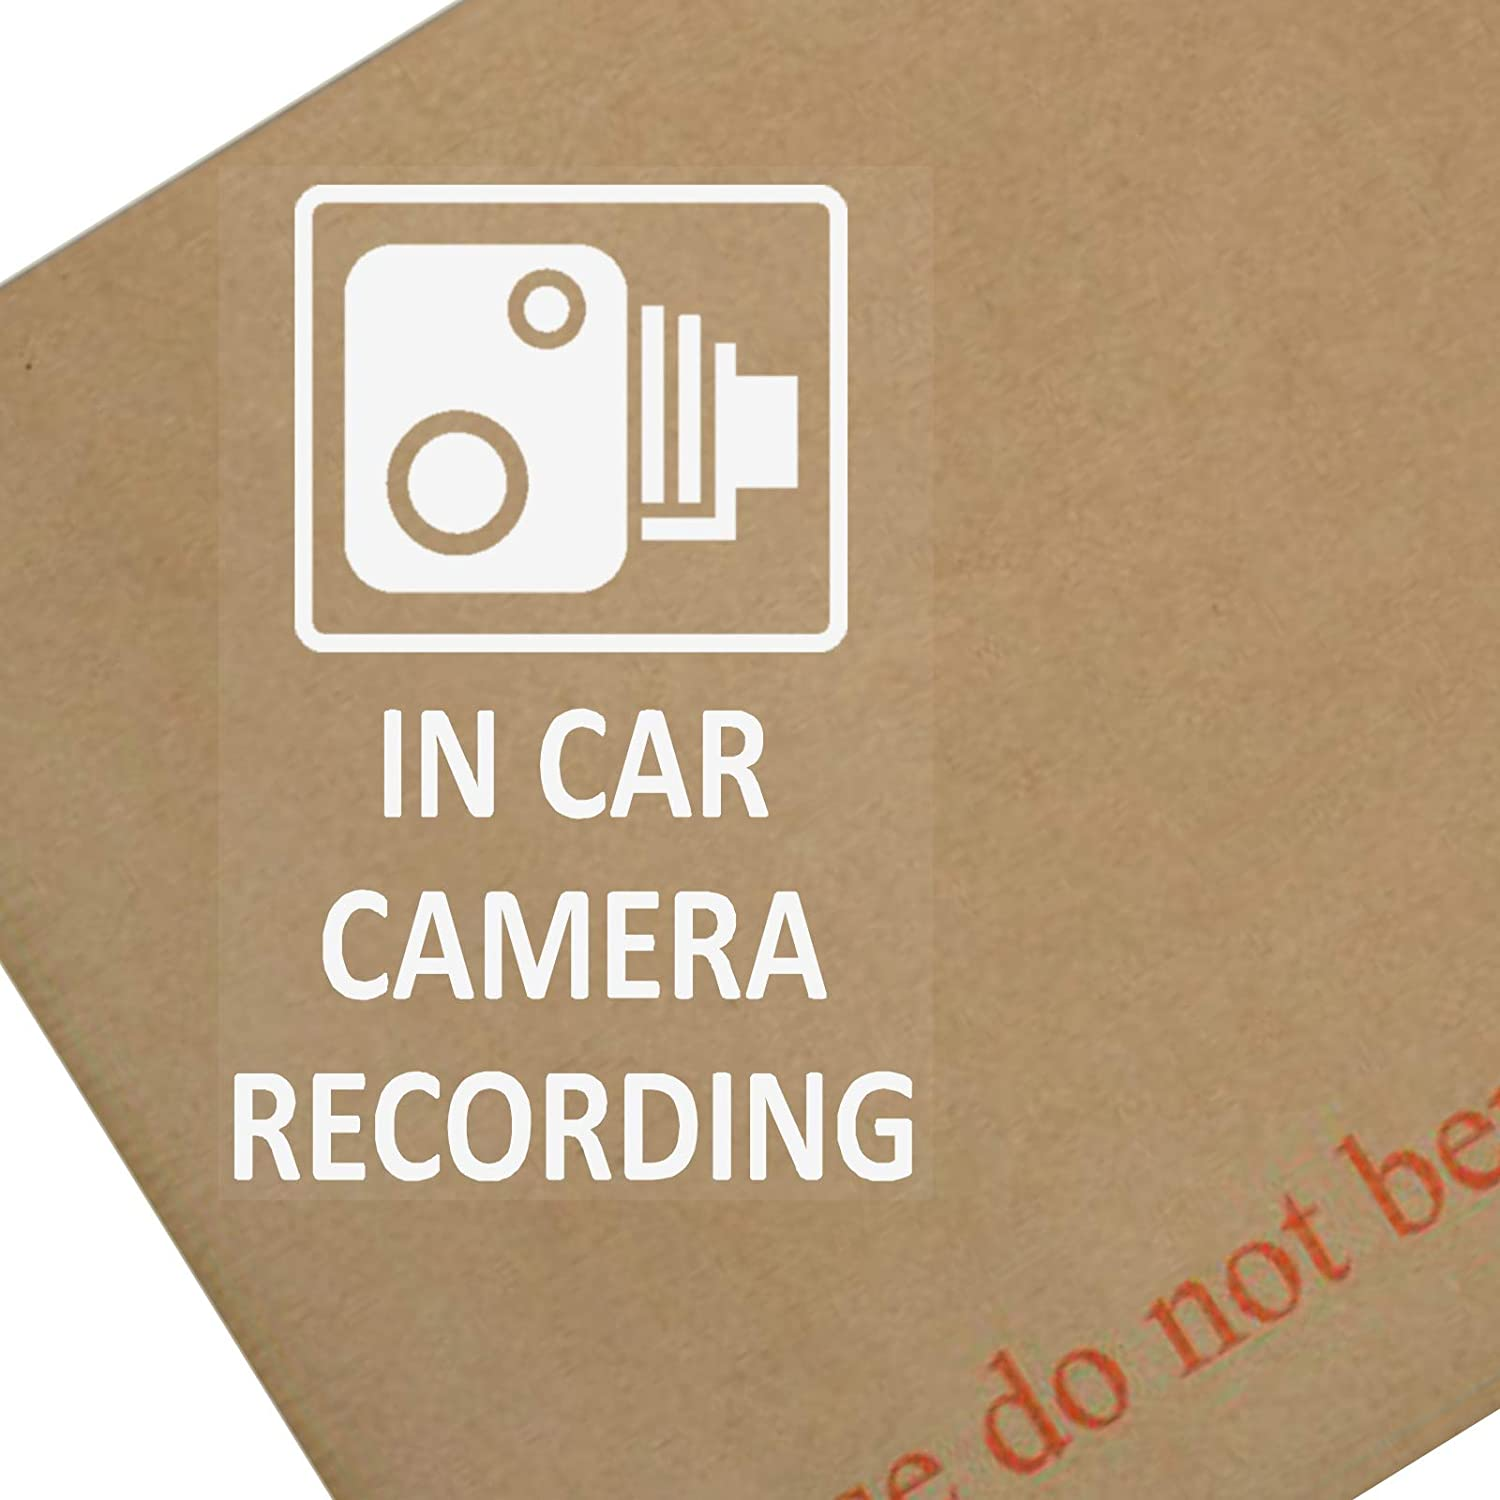 Platinum Place 4 x EXTERNAL In Car Camera Recording CCTV Sticker-60x87mm-WHITE onto CLEAR-Car,Vehicle,Van,Lorry,Truck,Taxi,Bus,Minicab,Cab,Safety,Security